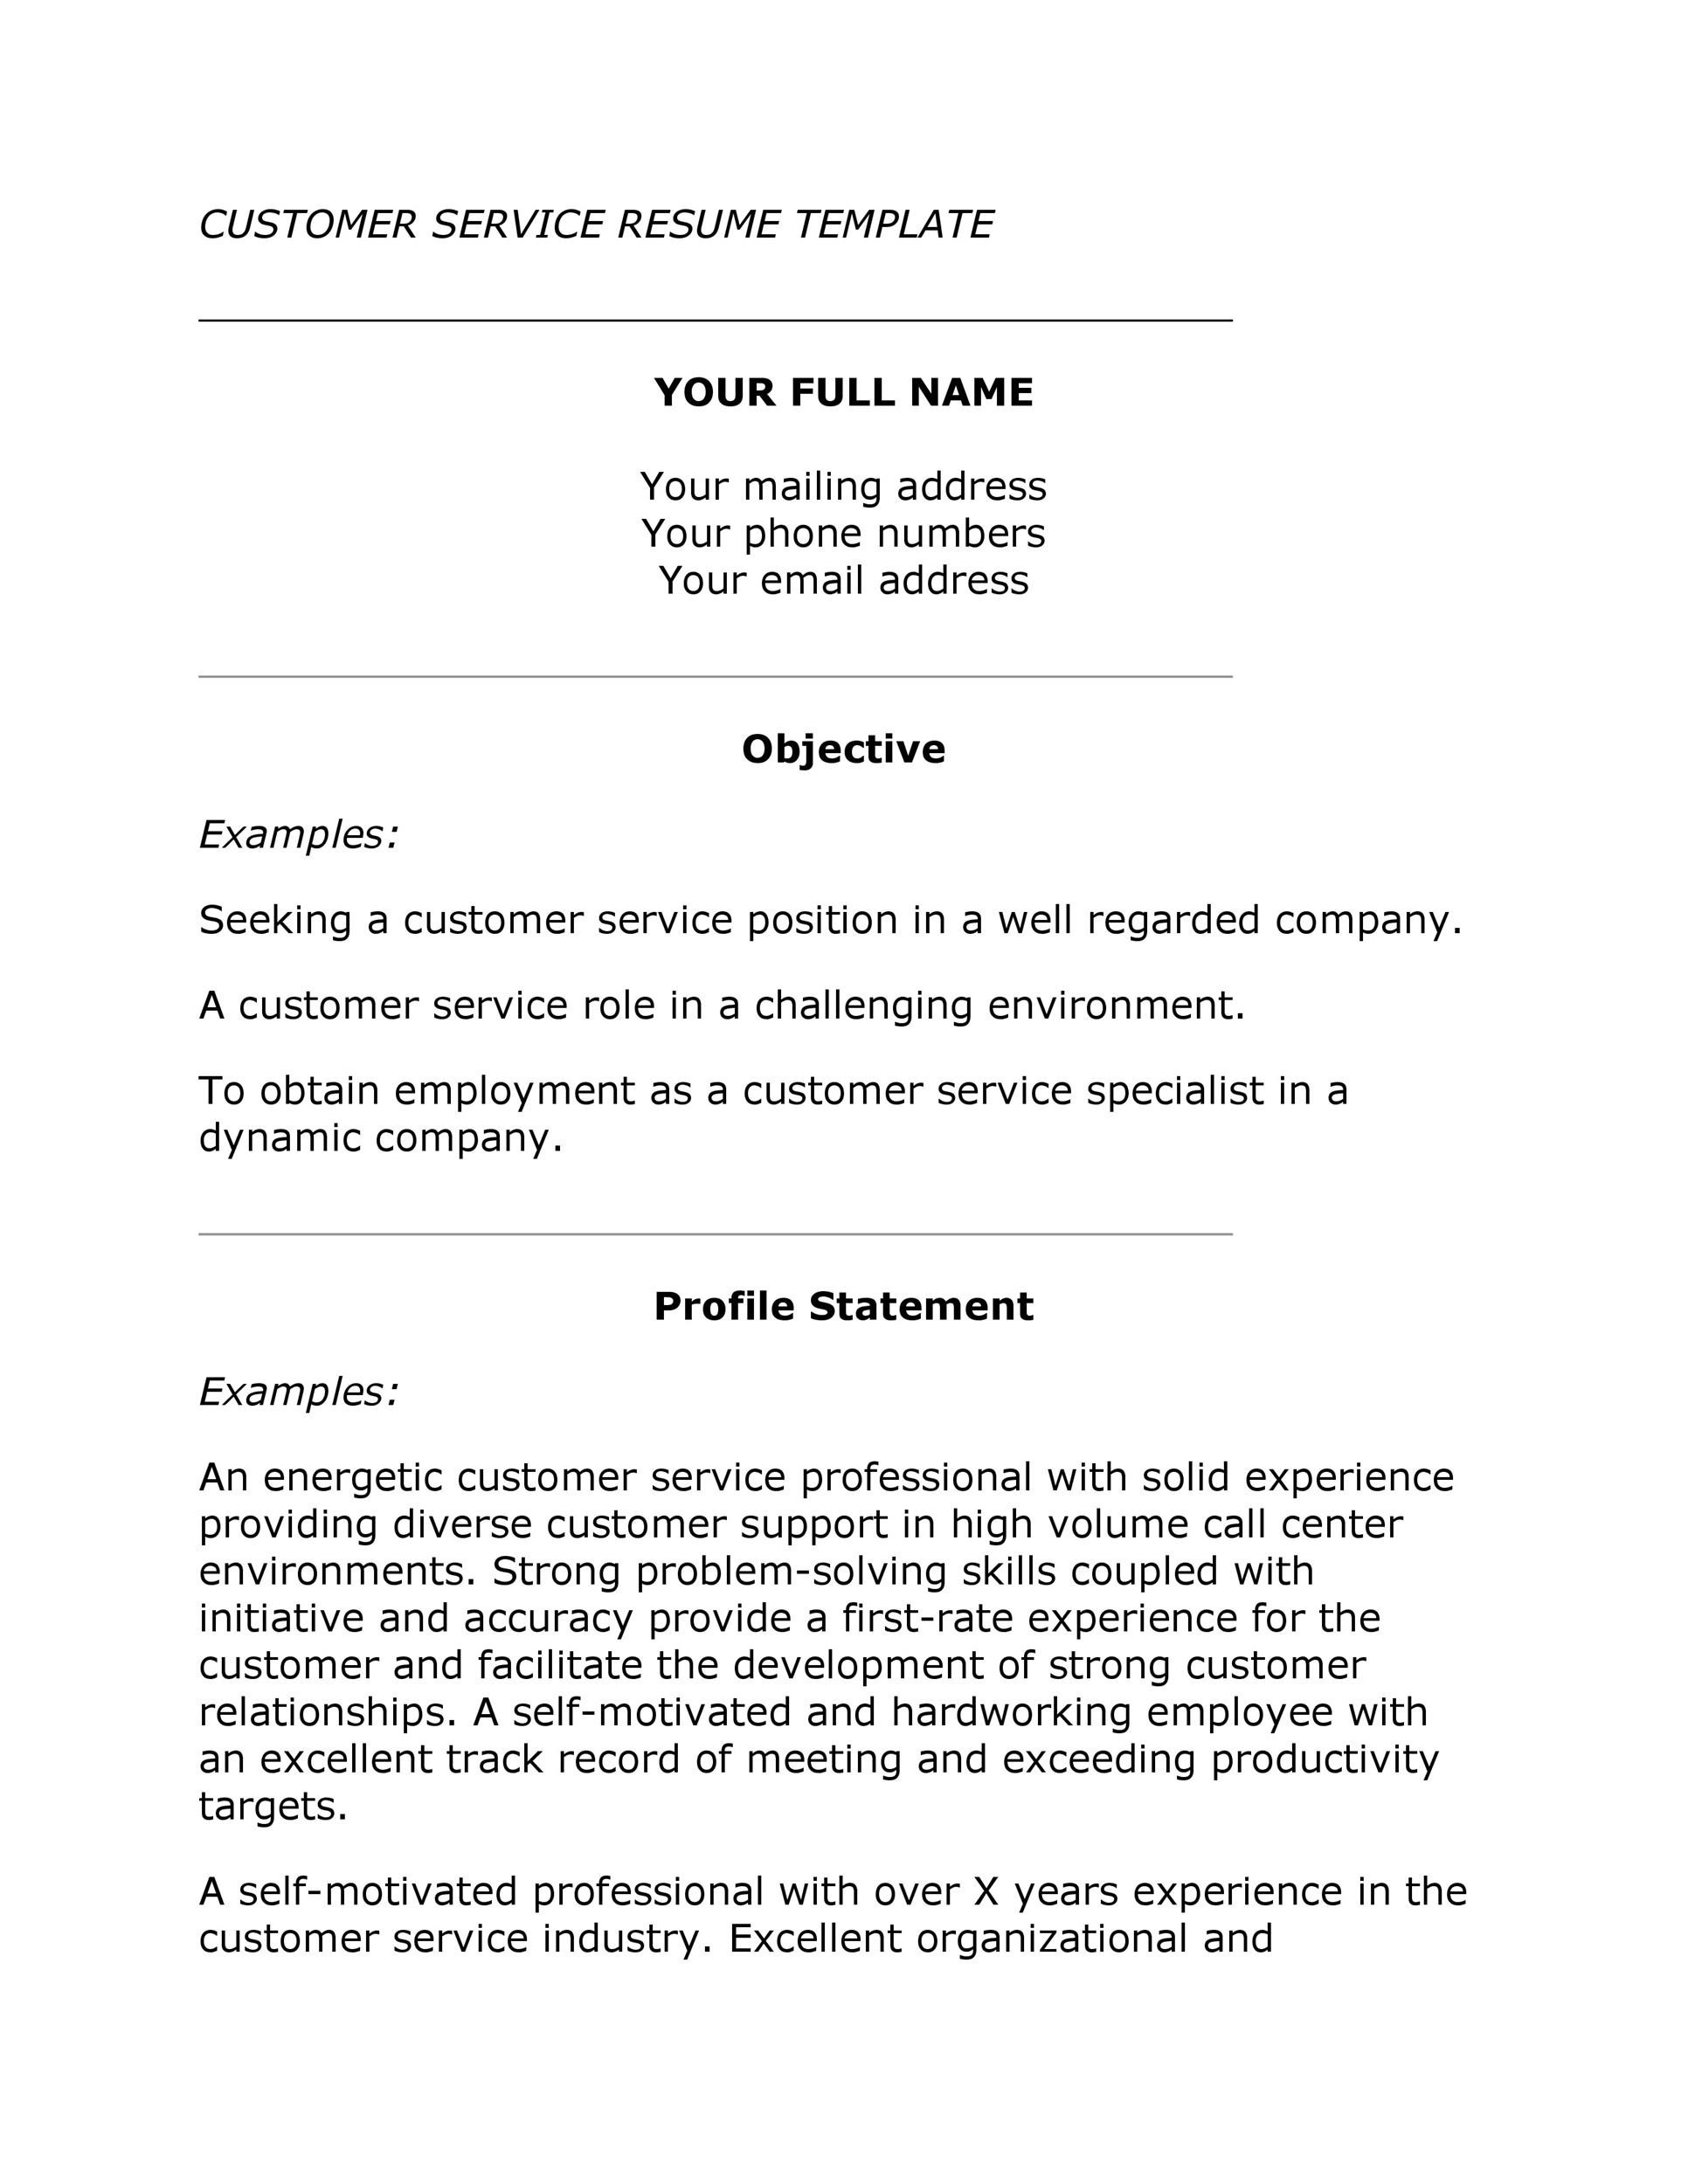 Free Customer Service Resume Template 06